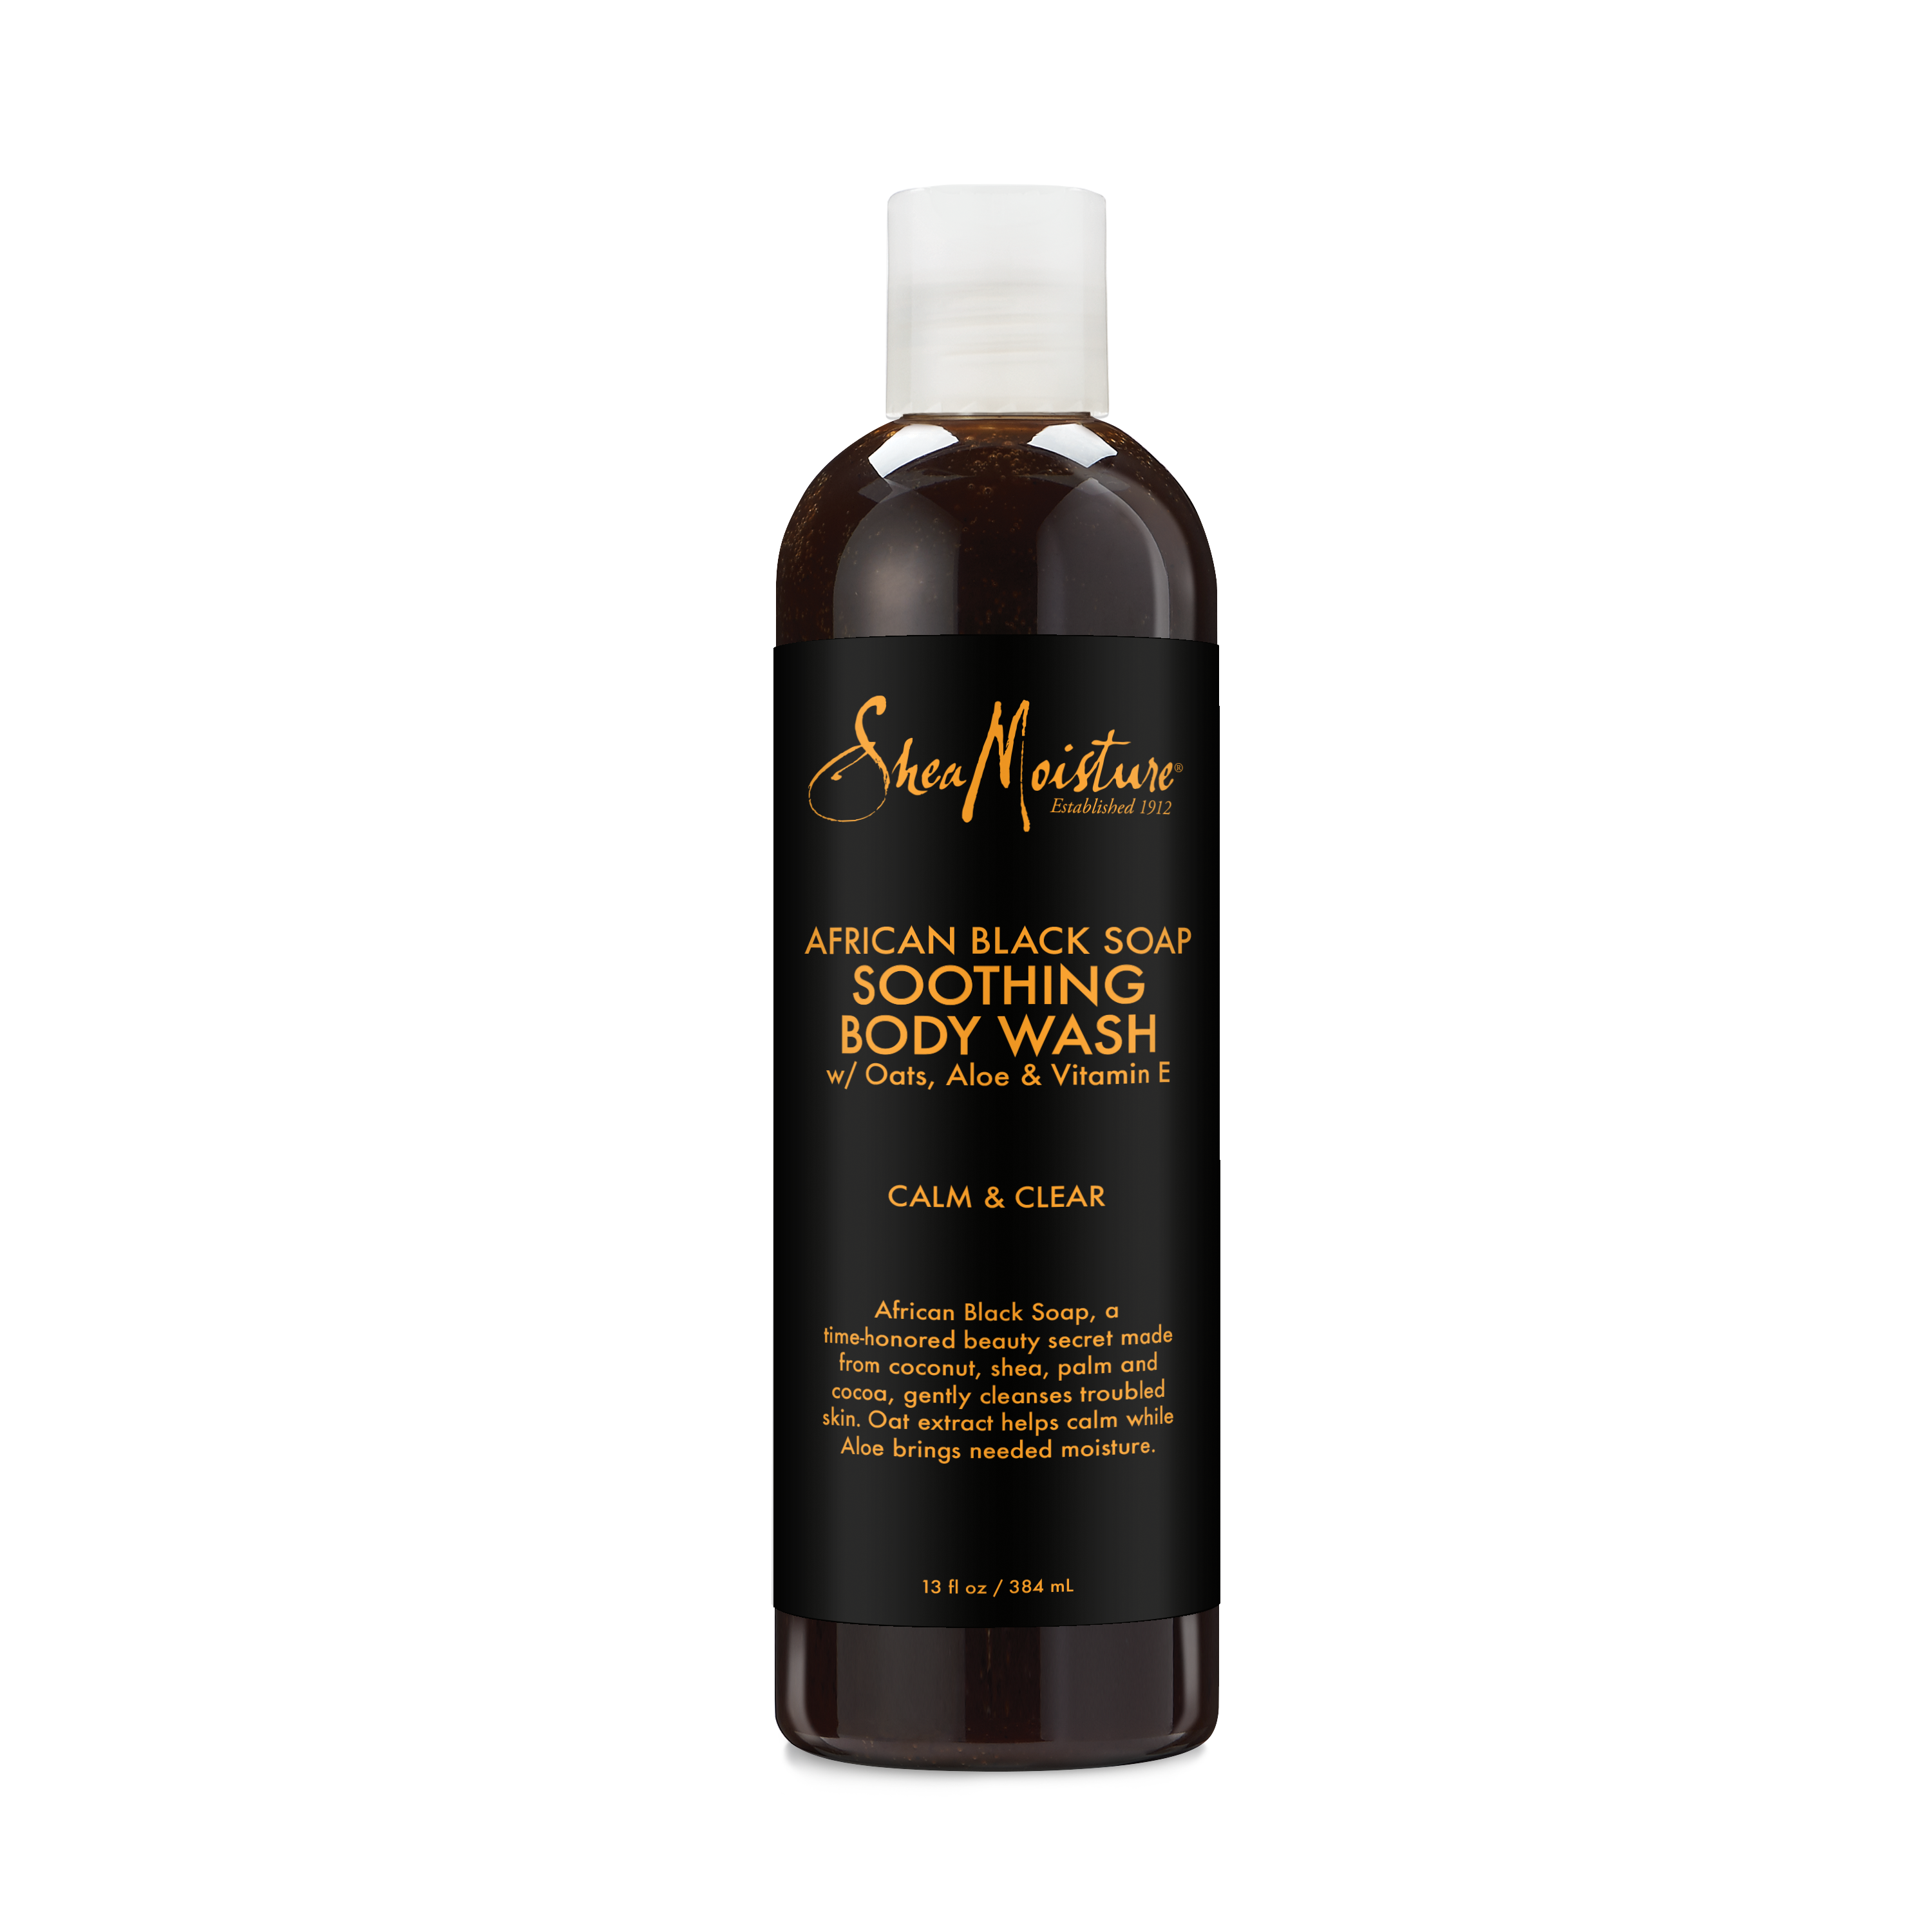 African Black Soap Body Wash - Moisturizes and Soothes Dry, Sensitive Skin - Sulfate-Free with Natural and Organic Ingredients - Cleanses Pores and Hydrates for Smooth Skin (13 oz)